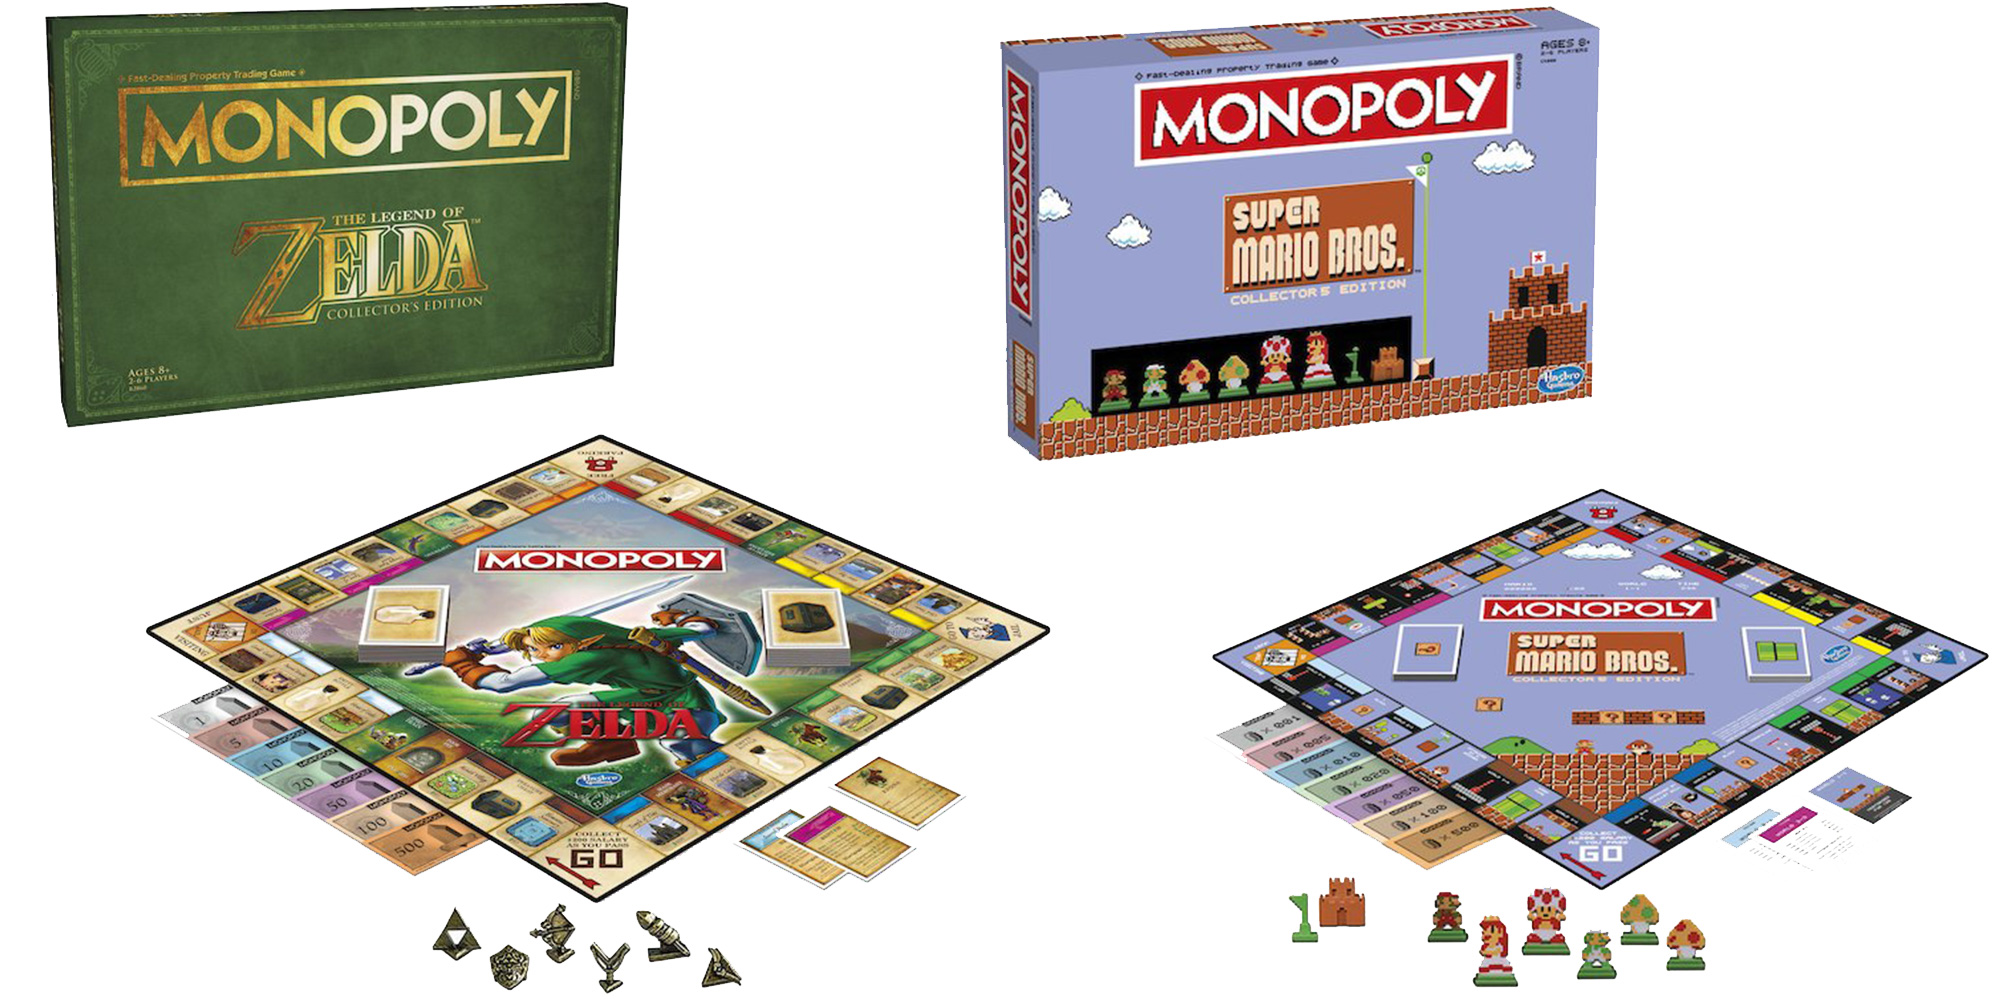 nintendo 39 s officially licensed monopoly zelda and mario games drop to 20 9to5toys. Black Bedroom Furniture Sets. Home Design Ideas